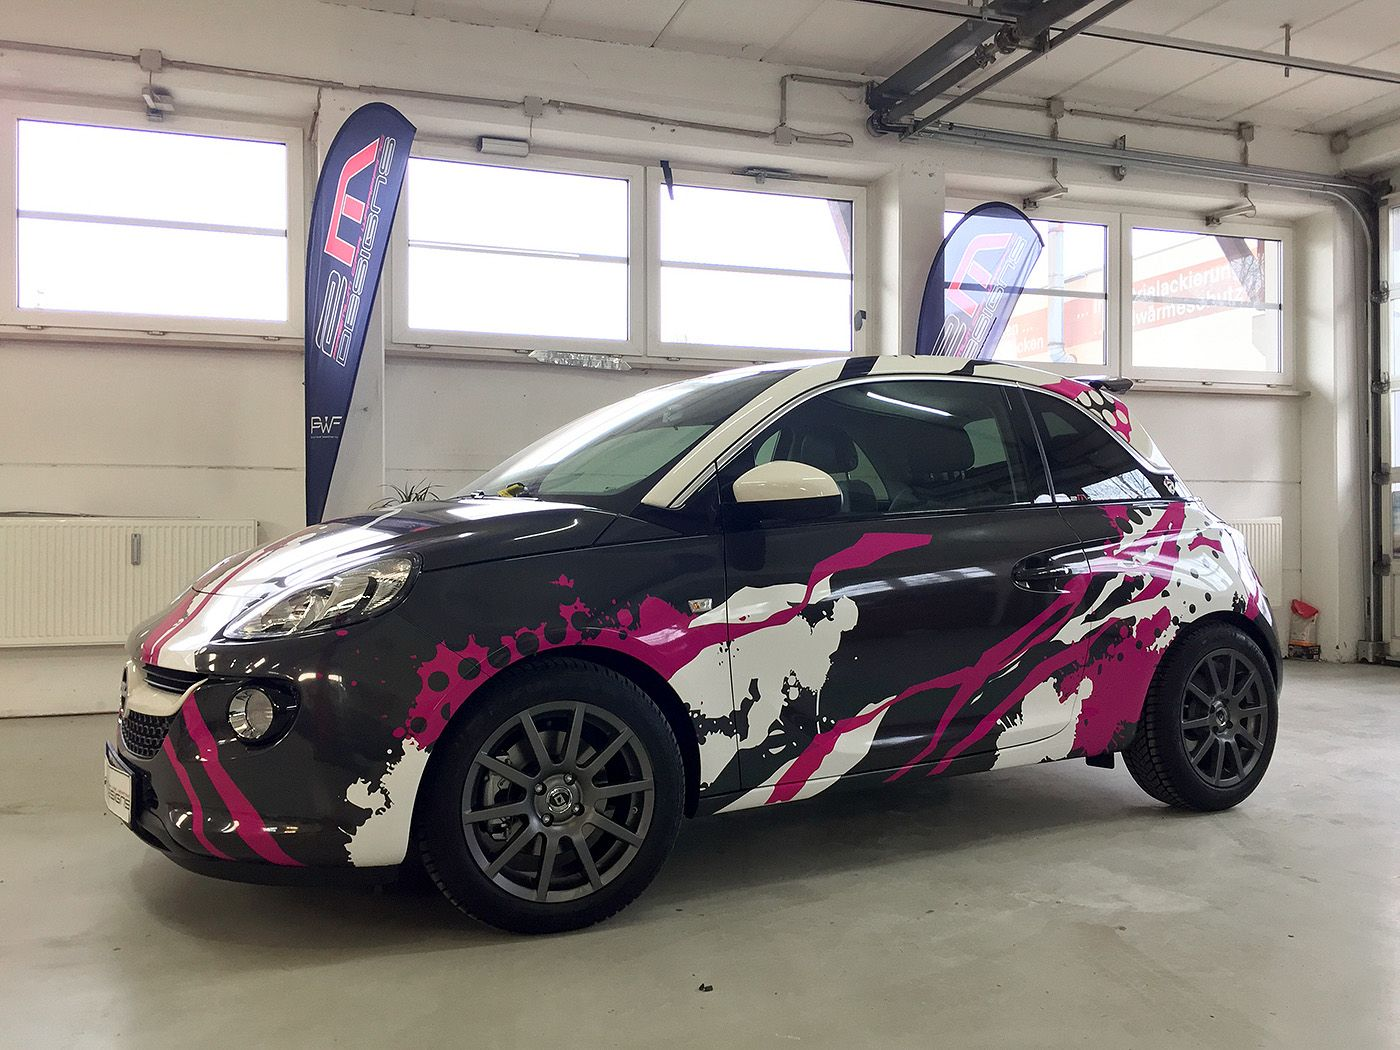 Audi r8 partial car wrapping sticker bomb stickerbomb by - Cool Purposeful Splatter Design On This Car Wrap We Love It